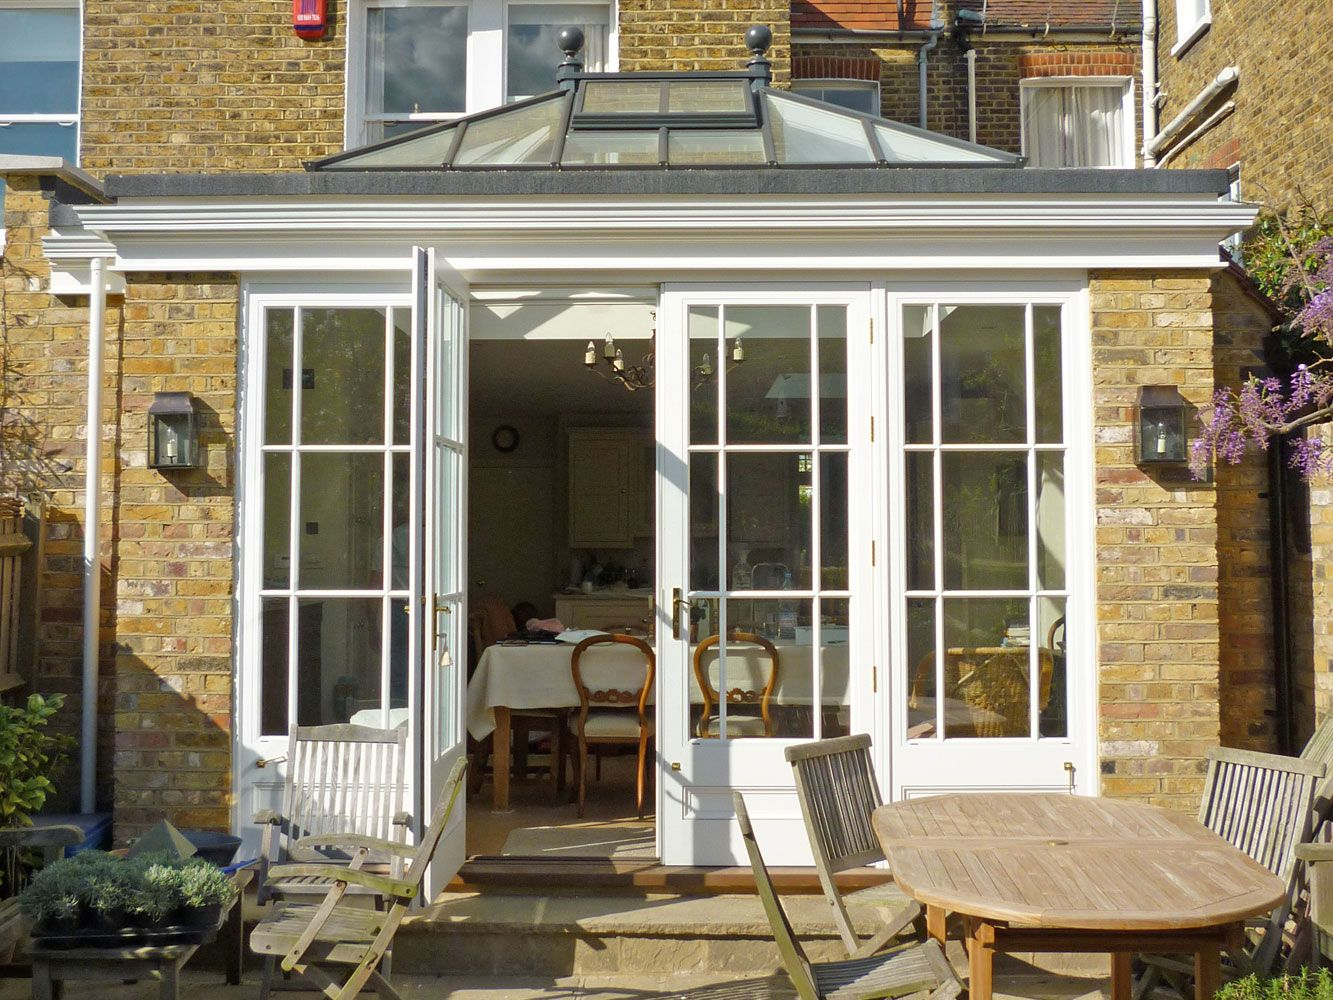 Flat extension roof idea flat roof skylights flat extension roof idea - Masonry Extension Featuring A Roof Lantern French Doors And Matching Windows